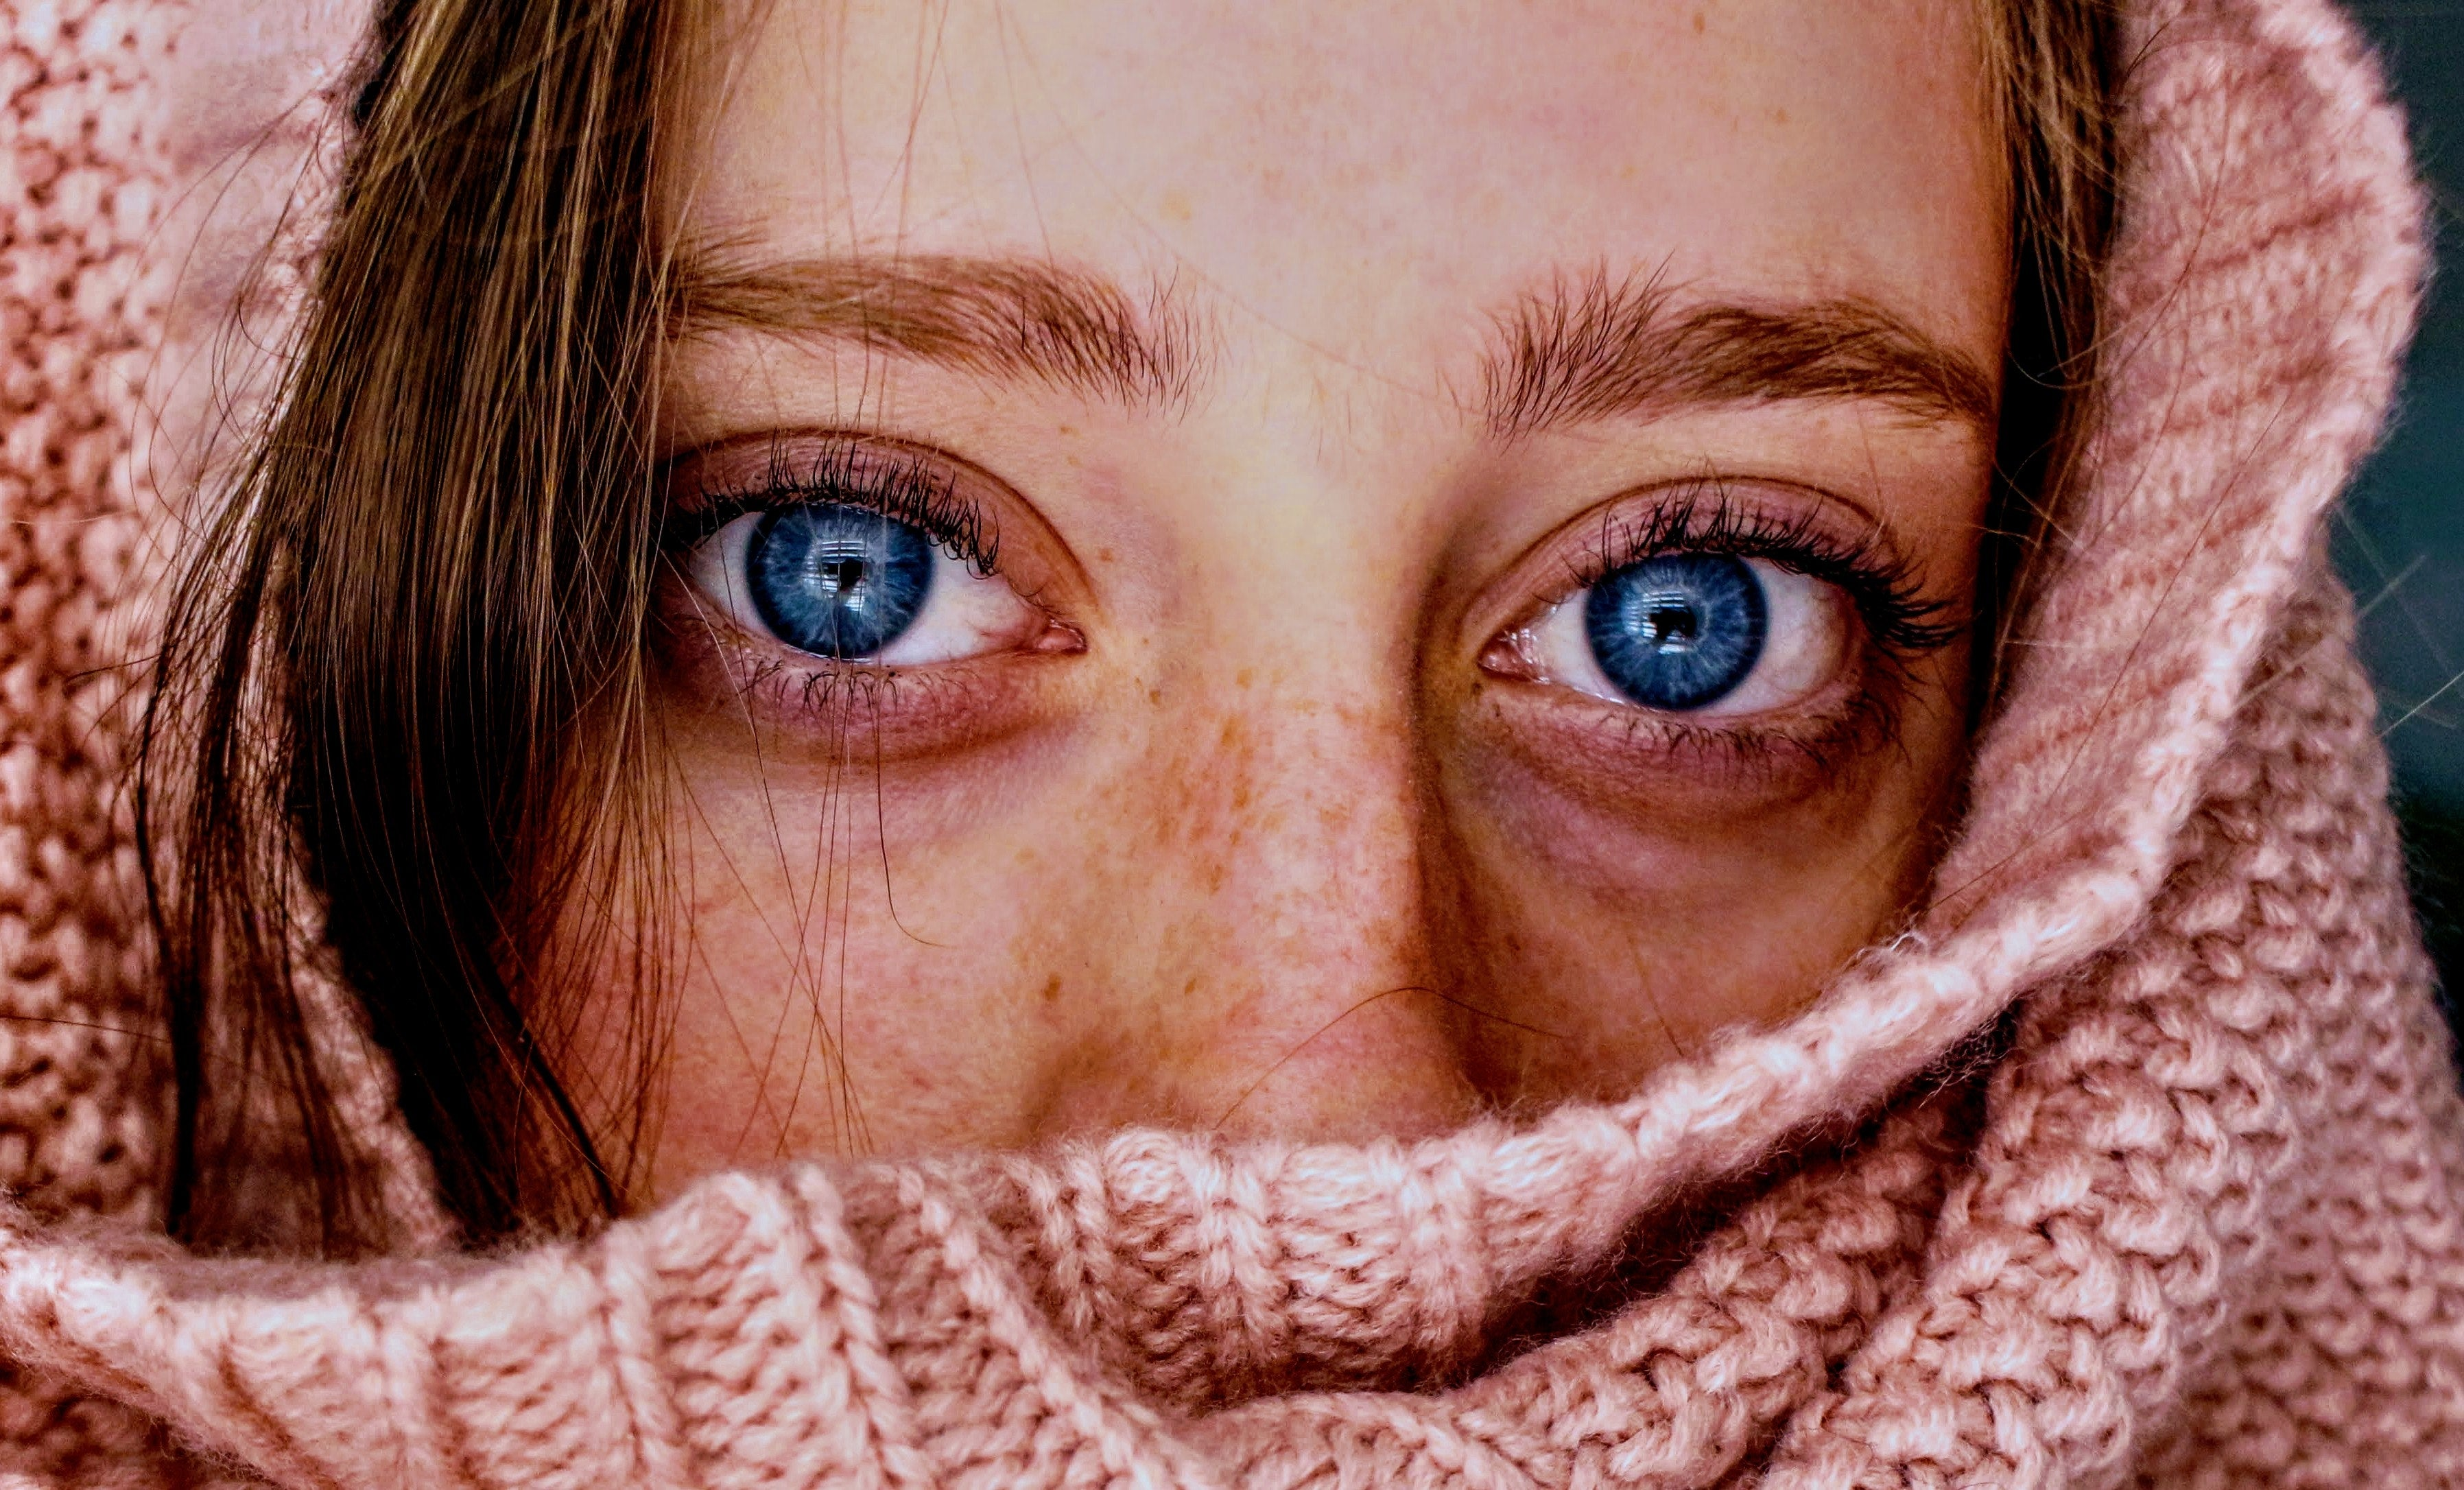 woman peaking through knit scarf